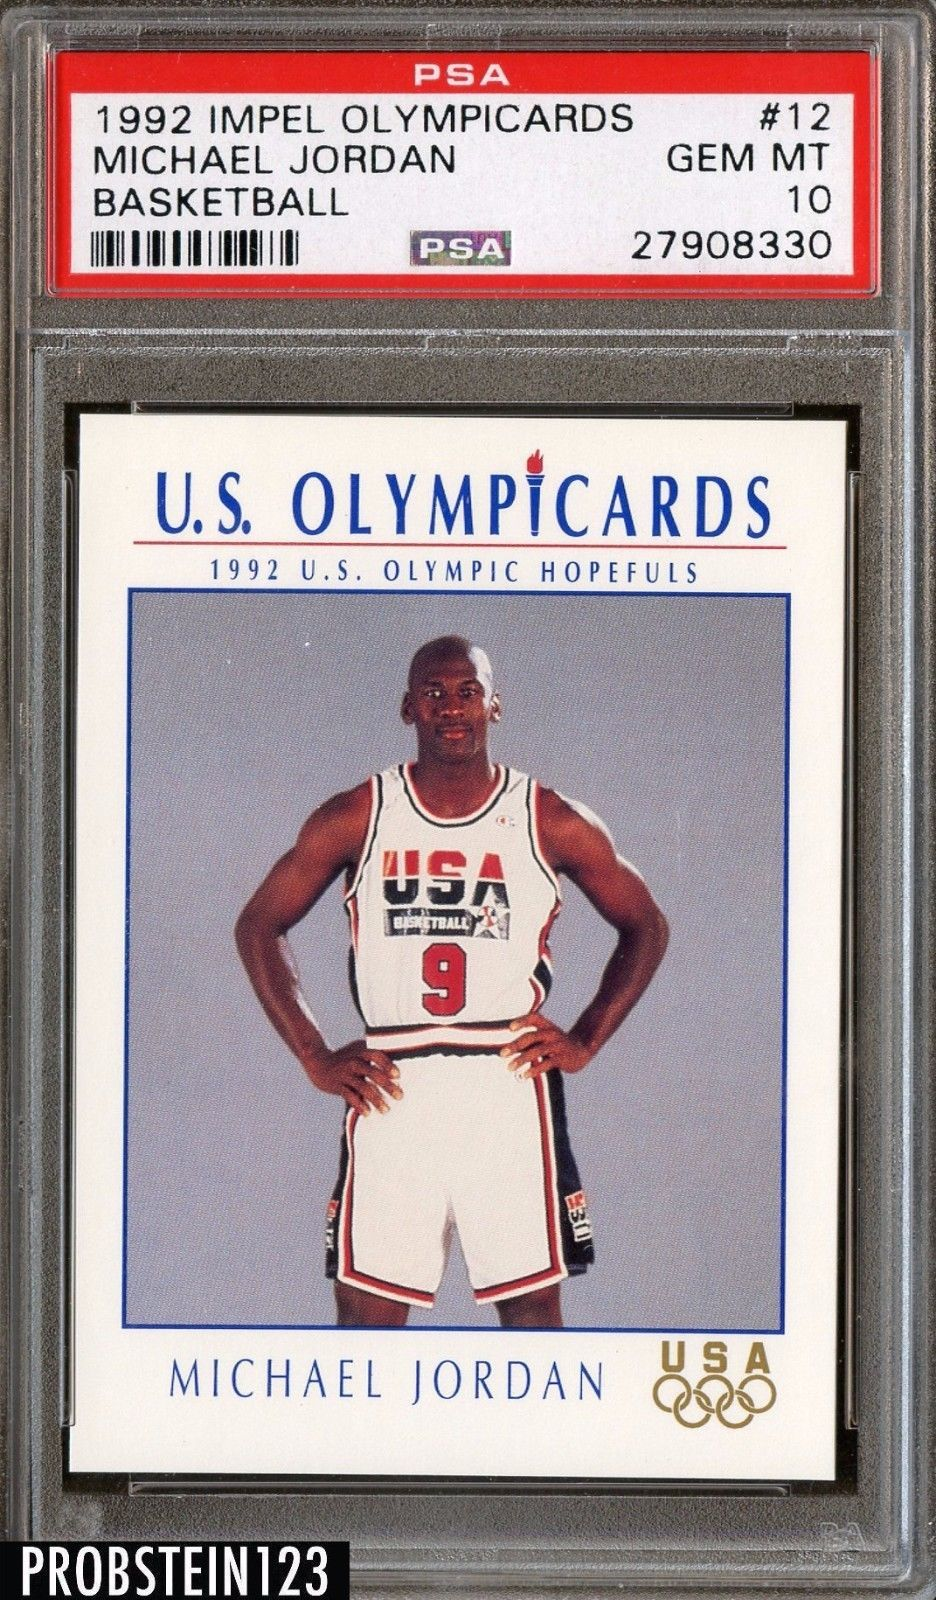 28b68ee15ab 1992 Impel Olympicards Basketball #12 Michael Jordan Dream Team HOF PSA 10 # MichaelJordan